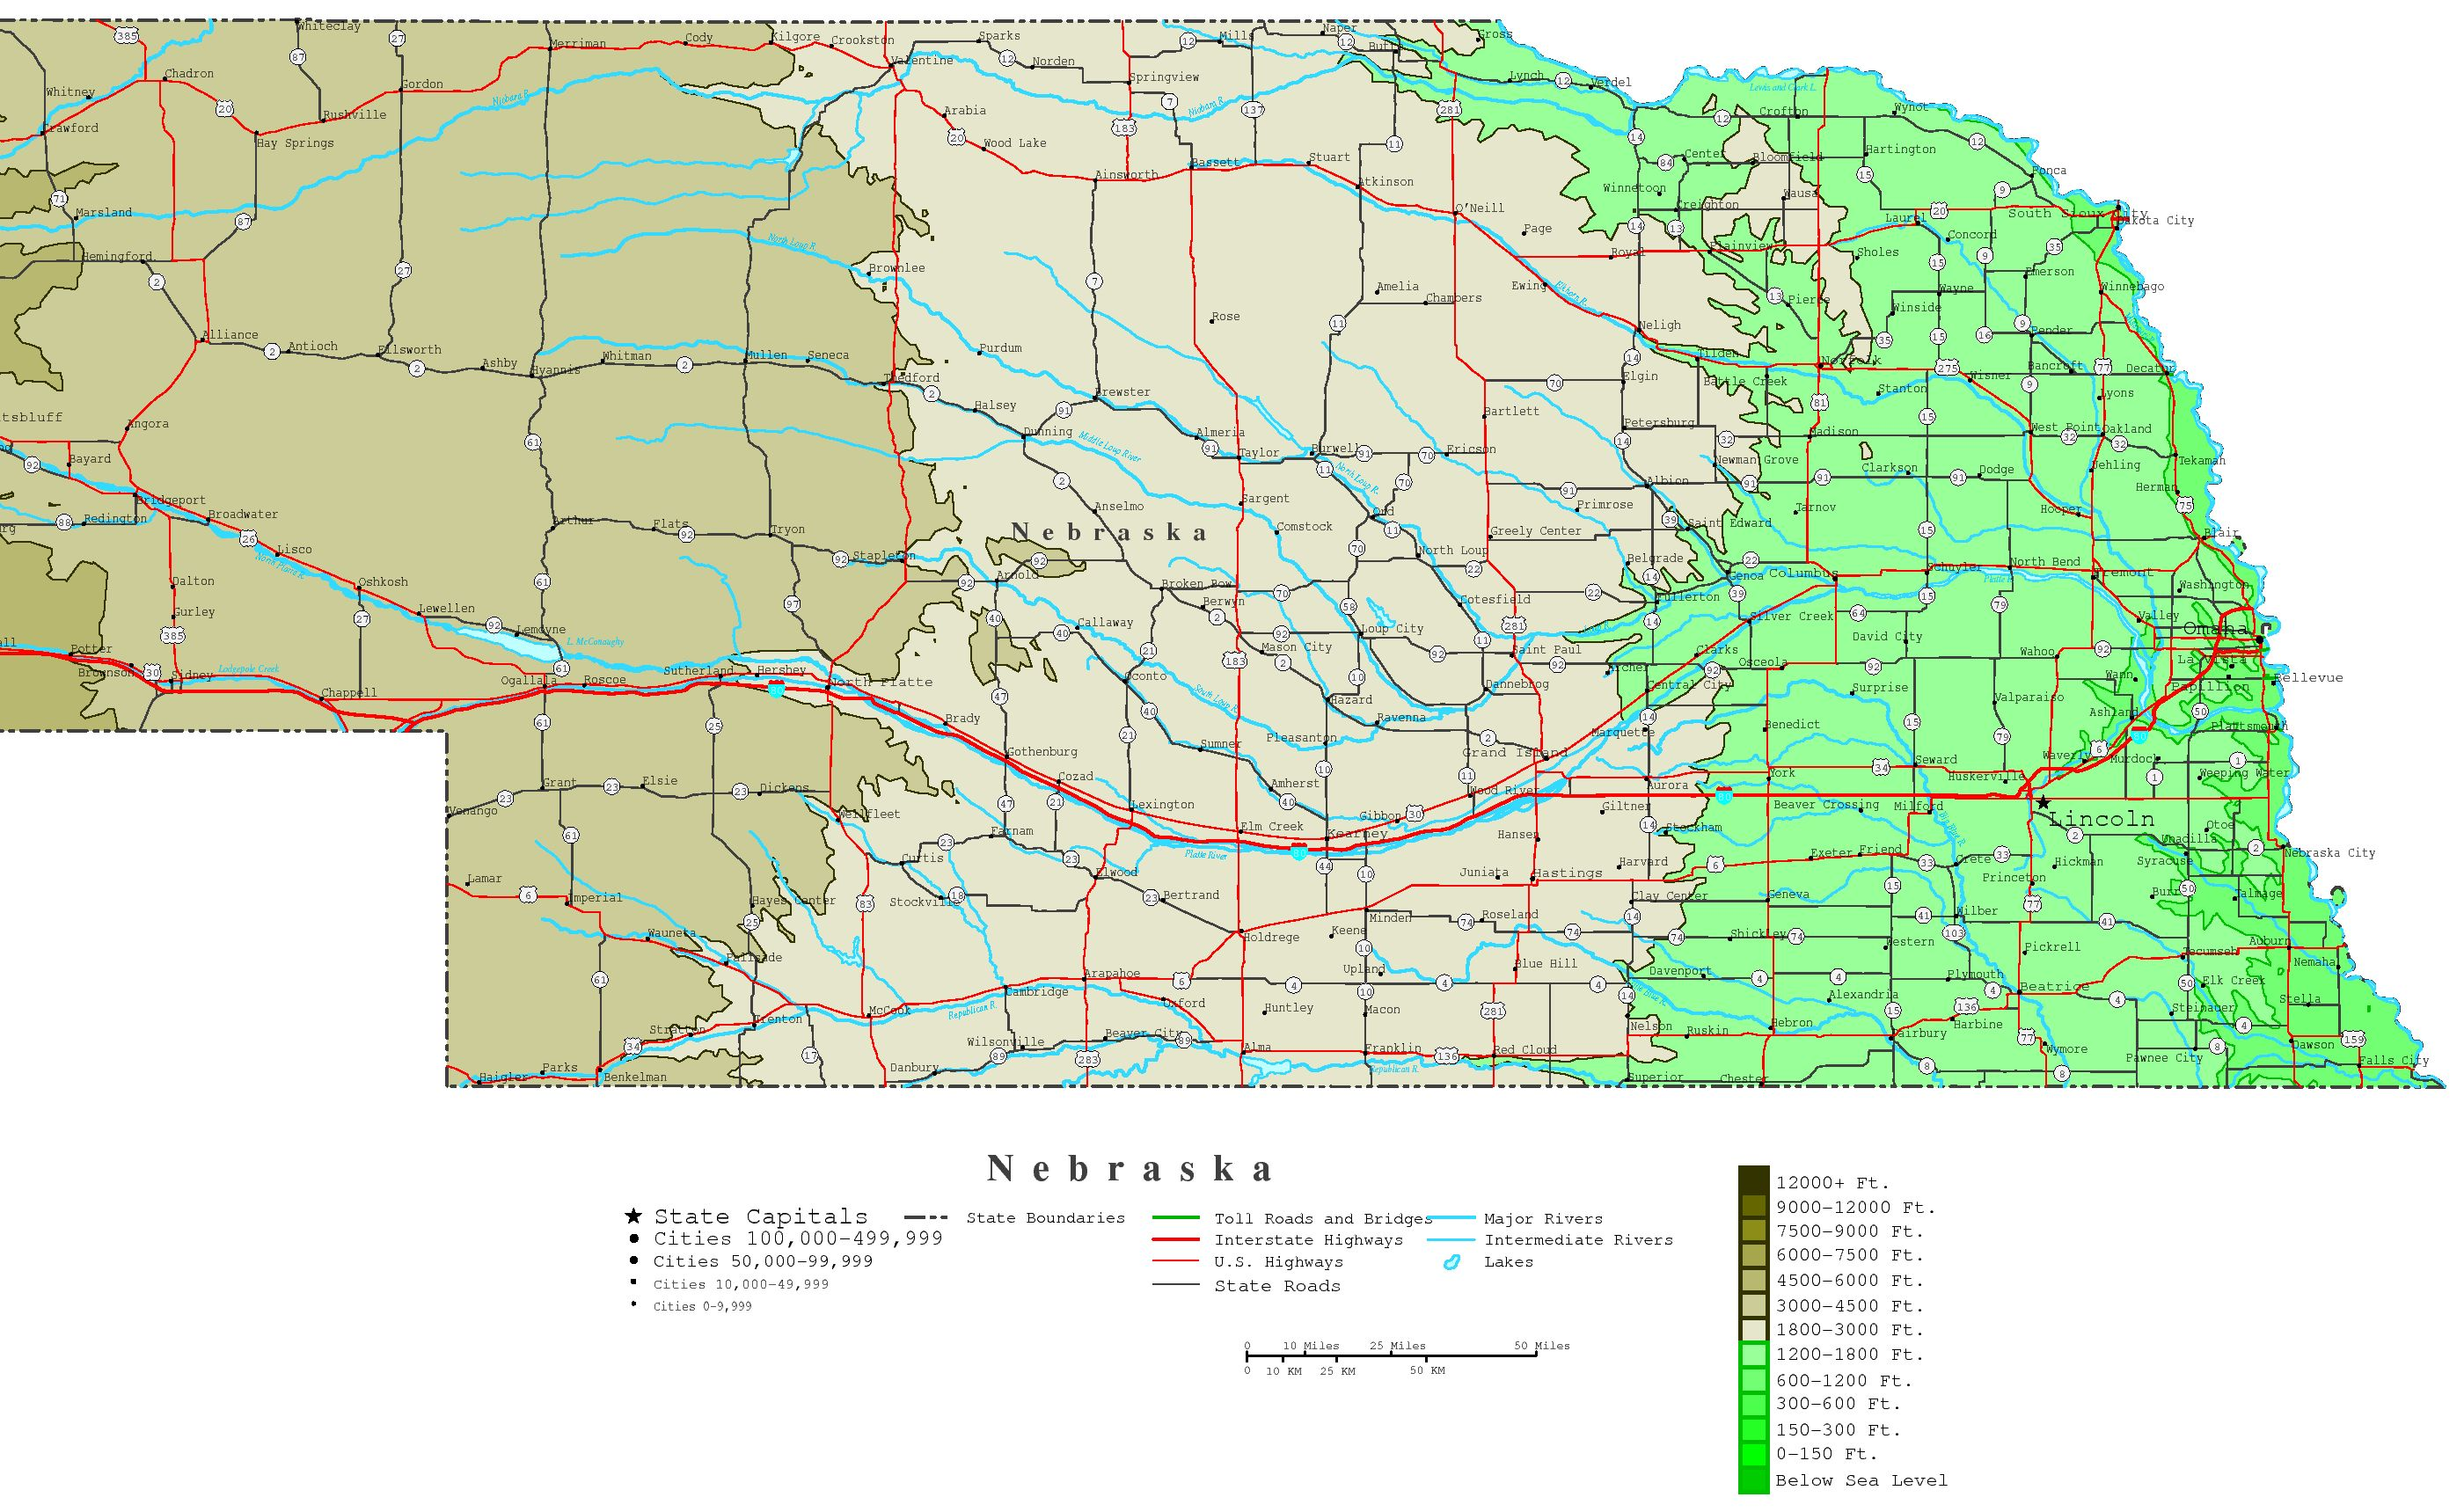 Nebraska Contour Map - Nebraska on a us map